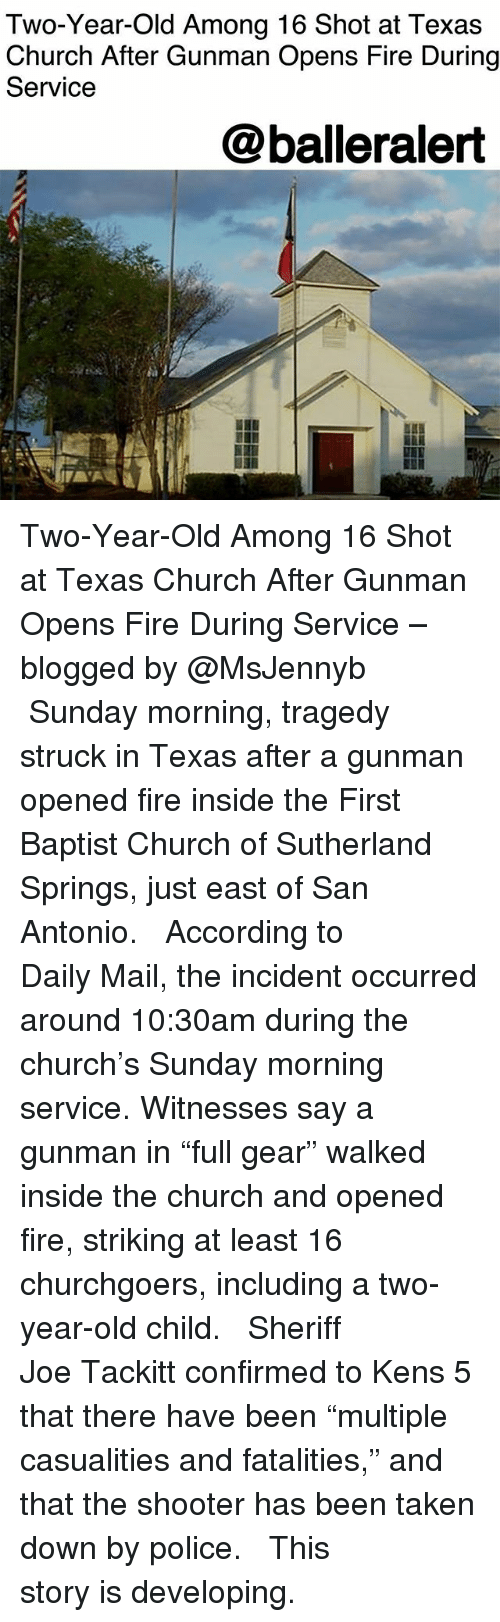 """Church, Fire, and Memes: Two-Year-Old Among 16 Shot at Texa:s  Church After Gunman Opens Fire During  Service  @balleralert Two-Year-Old Among 16 Shot at Texas Church After Gunman Opens Fire During Service – blogged by @MsJennyb ⠀⠀⠀⠀⠀⠀⠀ ⠀⠀⠀⠀⠀⠀⠀ Sunday morning, tragedy struck in Texas after a gunman opened fire inside the First Baptist Church of Sutherland Springs, just east of San Antonio. ⠀⠀⠀⠀⠀⠀⠀ ⠀⠀⠀⠀⠀⠀⠀ According to Daily Mail, the incident occurred around 10:30am during the church's Sunday morning service. Witnesses say a gunman in """"full gear"""" walked inside the church and opened fire, striking at least 16 churchgoers, including a two-year-old child. ⠀⠀⠀⠀⠀⠀⠀ ⠀⠀⠀⠀⠀⠀⠀ Sheriff Joe Tackitt confirmed to Kens 5 that there have been """"multiple casualities and fatalities,"""" and that the shooter has been taken down by police. ⠀⠀⠀⠀⠀⠀⠀ ⠀⠀⠀⠀⠀⠀⠀ This story is developing."""